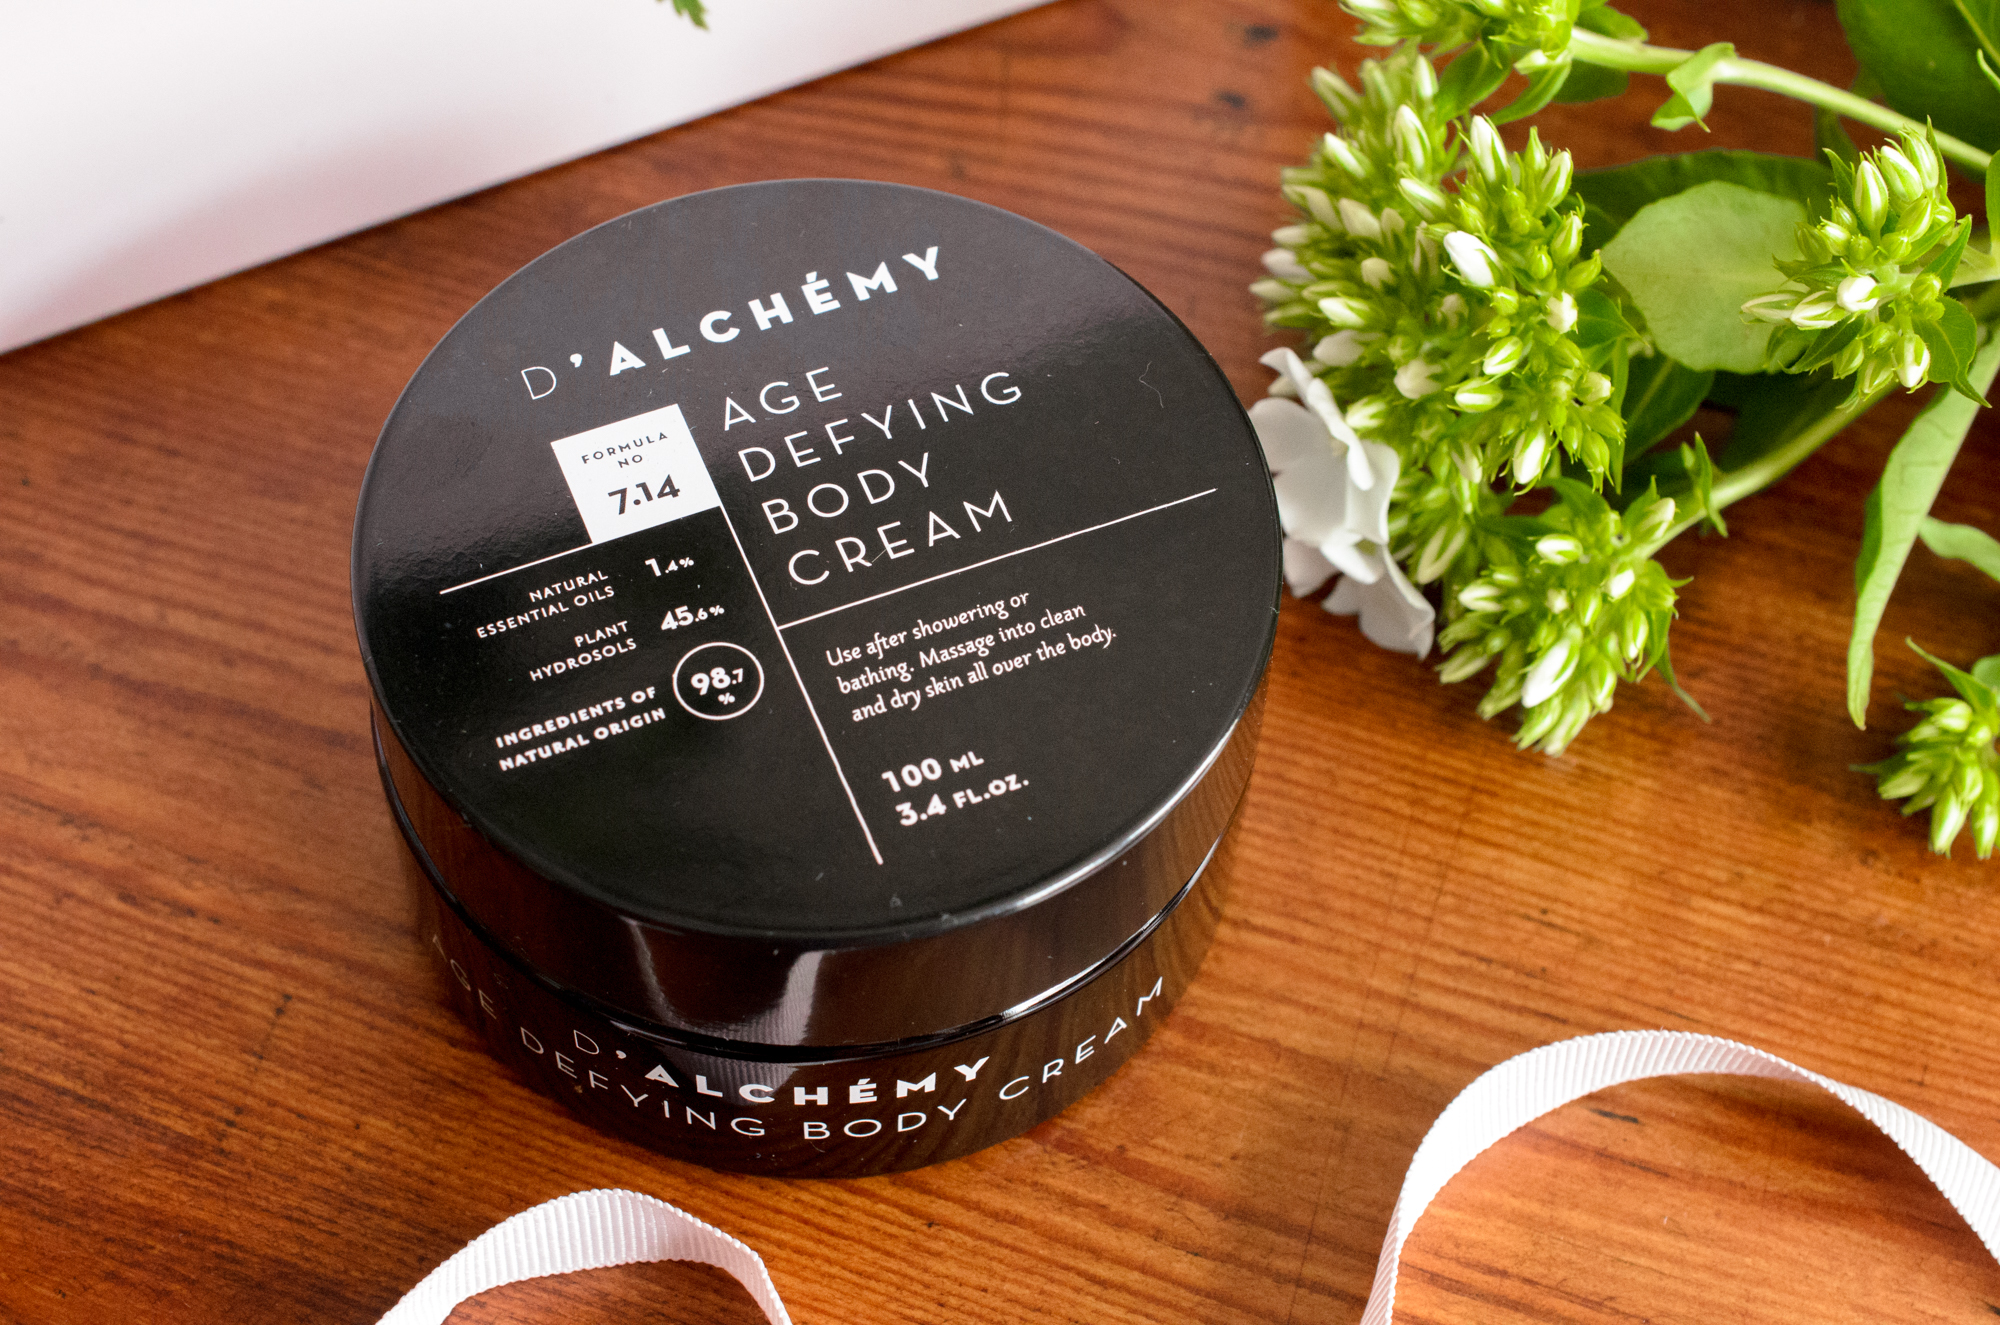 D'Alchemy Age Defying Body Cream